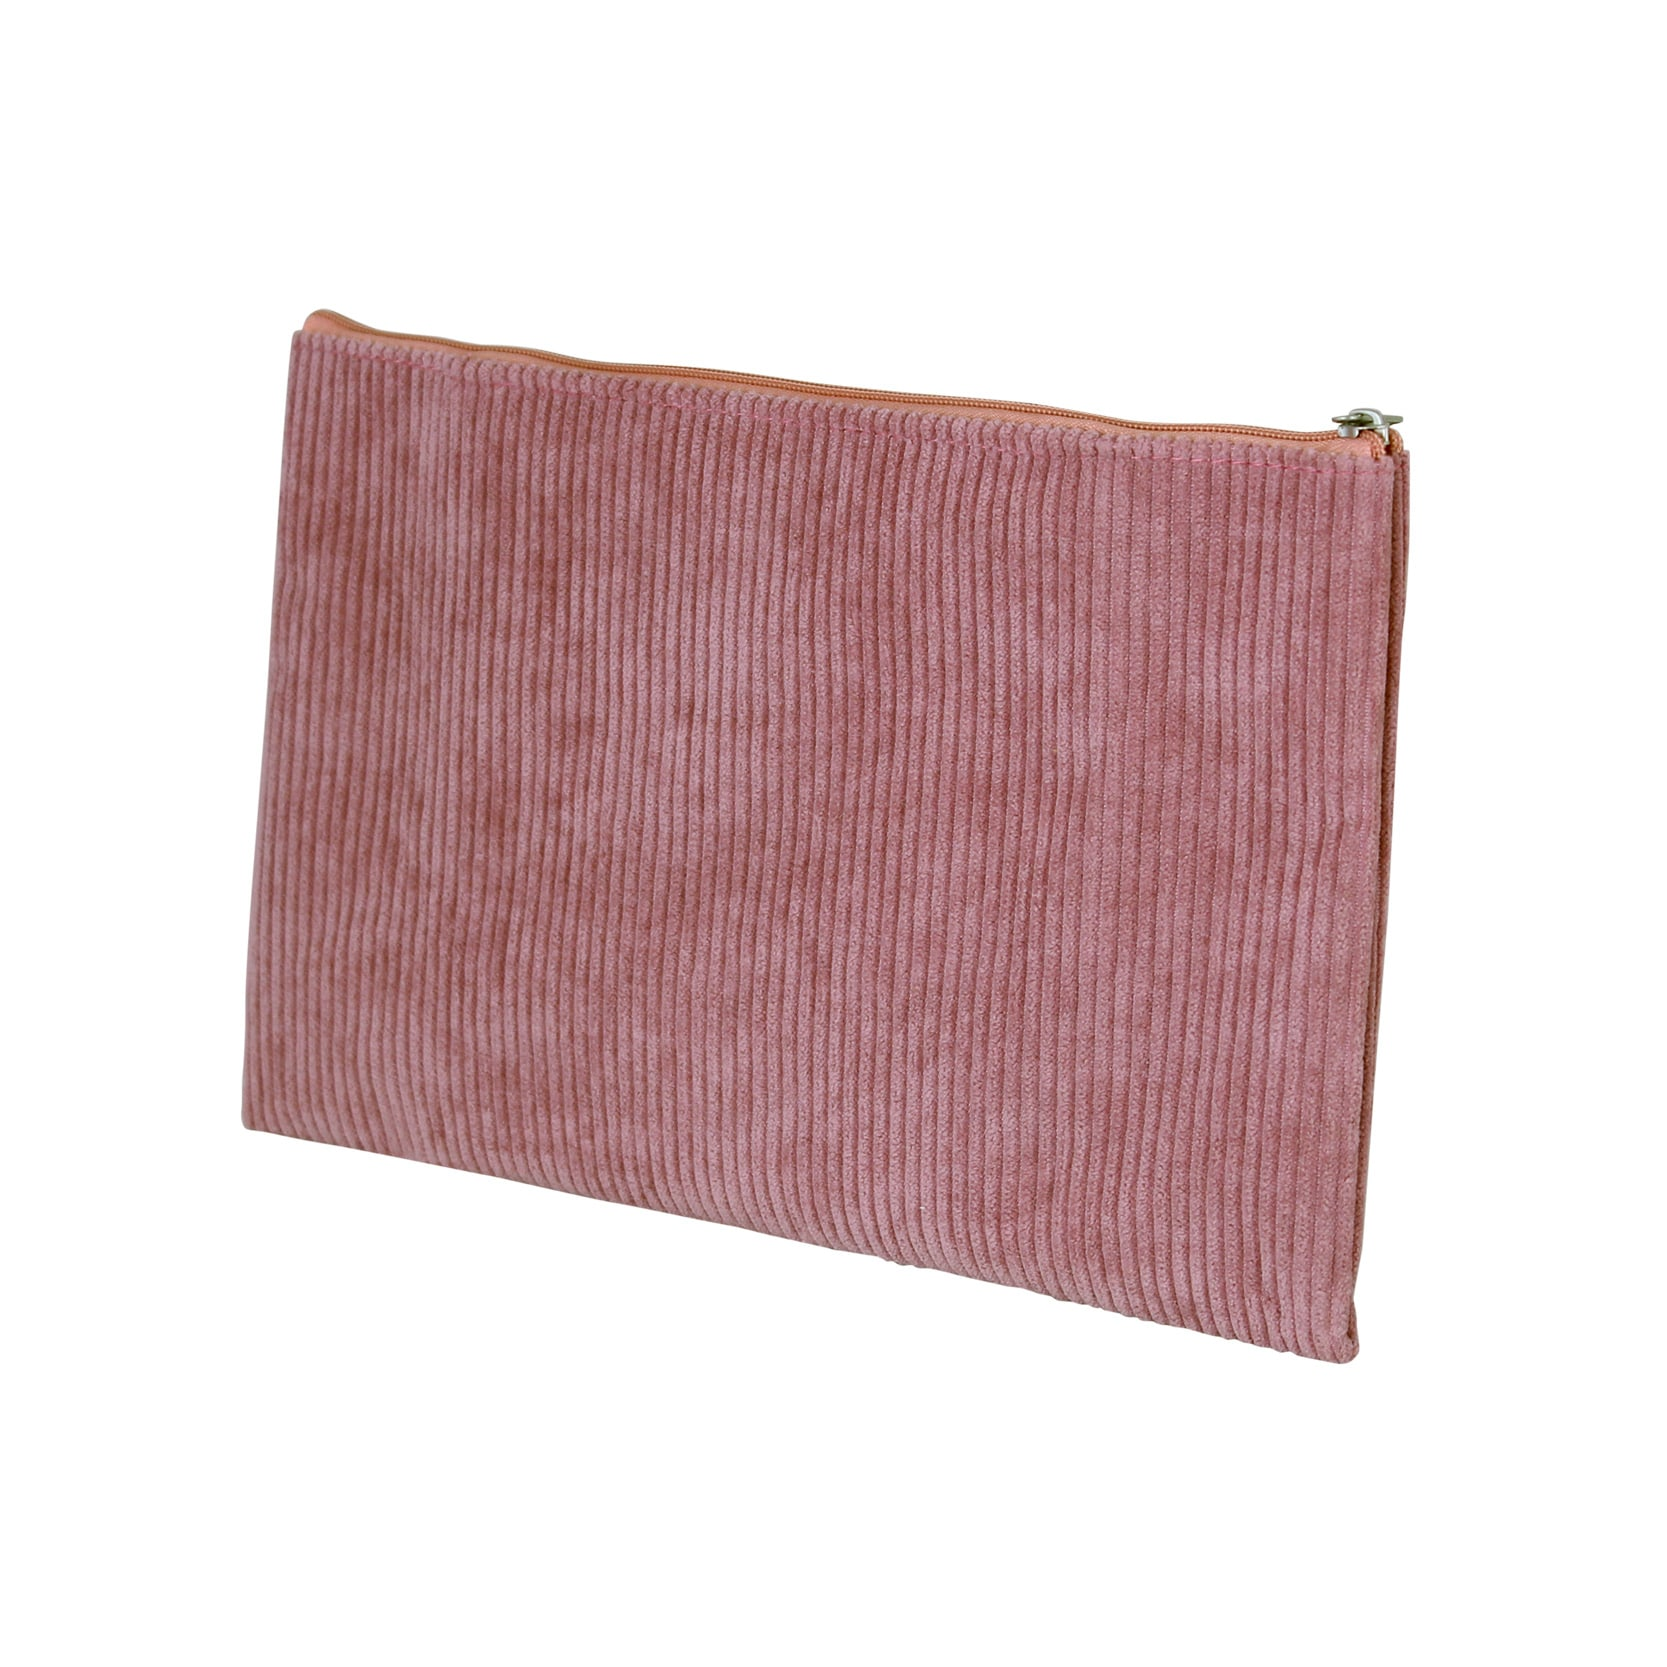 Toilet Bag Corduroy Pink